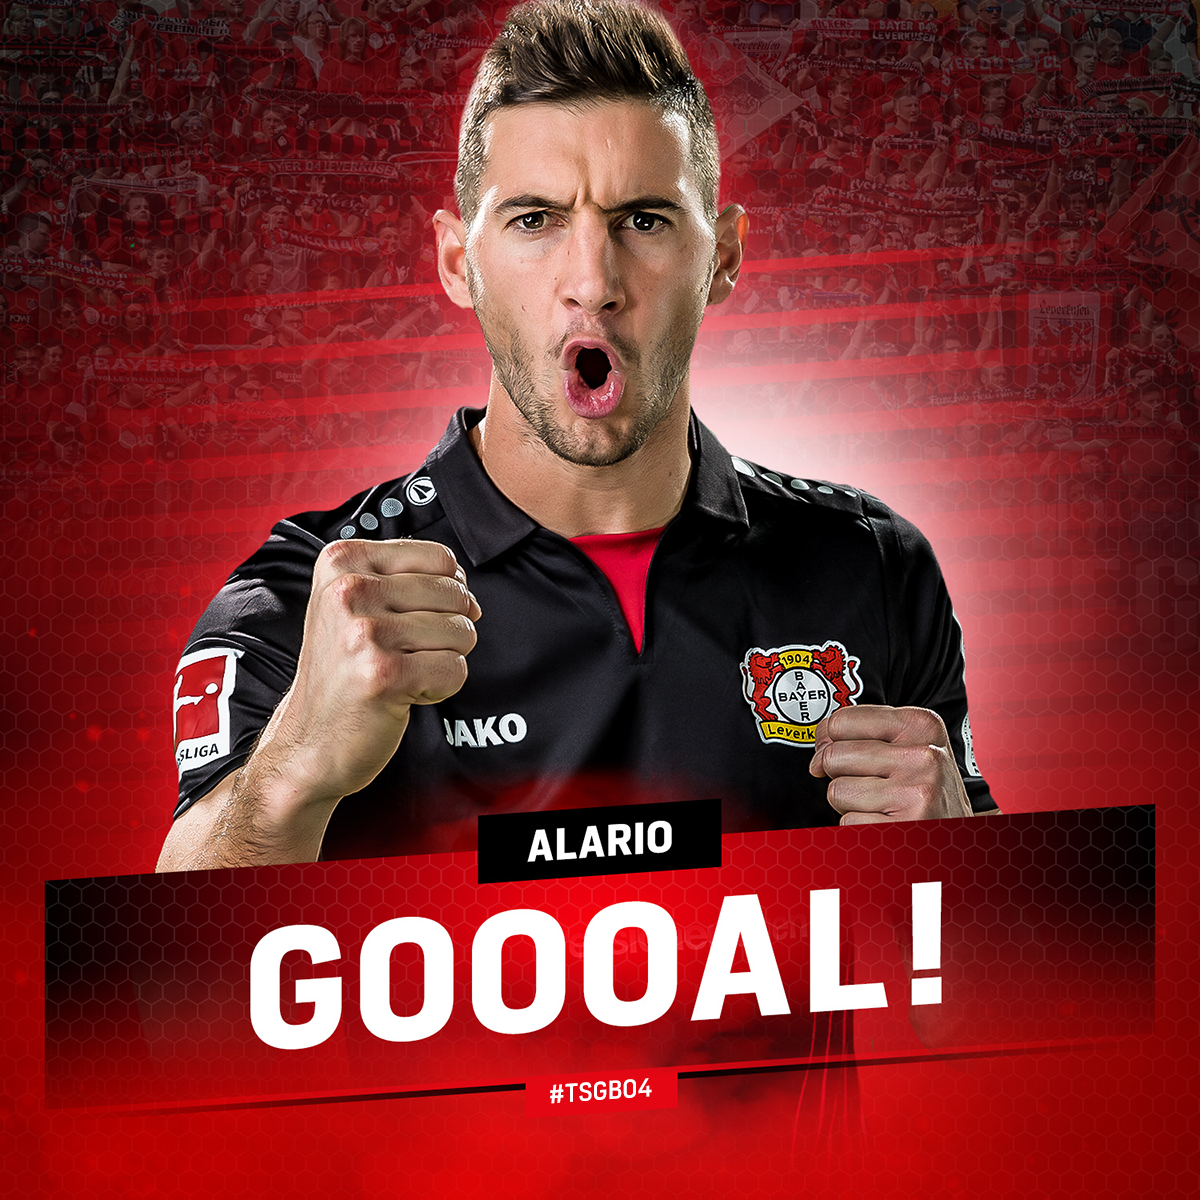 RT @bayer04_en: 71' ALARIOOOOOOOOOO!!  @lucasalario13 adds another goal to our tally!  #TSGB04 | 0:3 https://t.co/pU1LzH0Eza